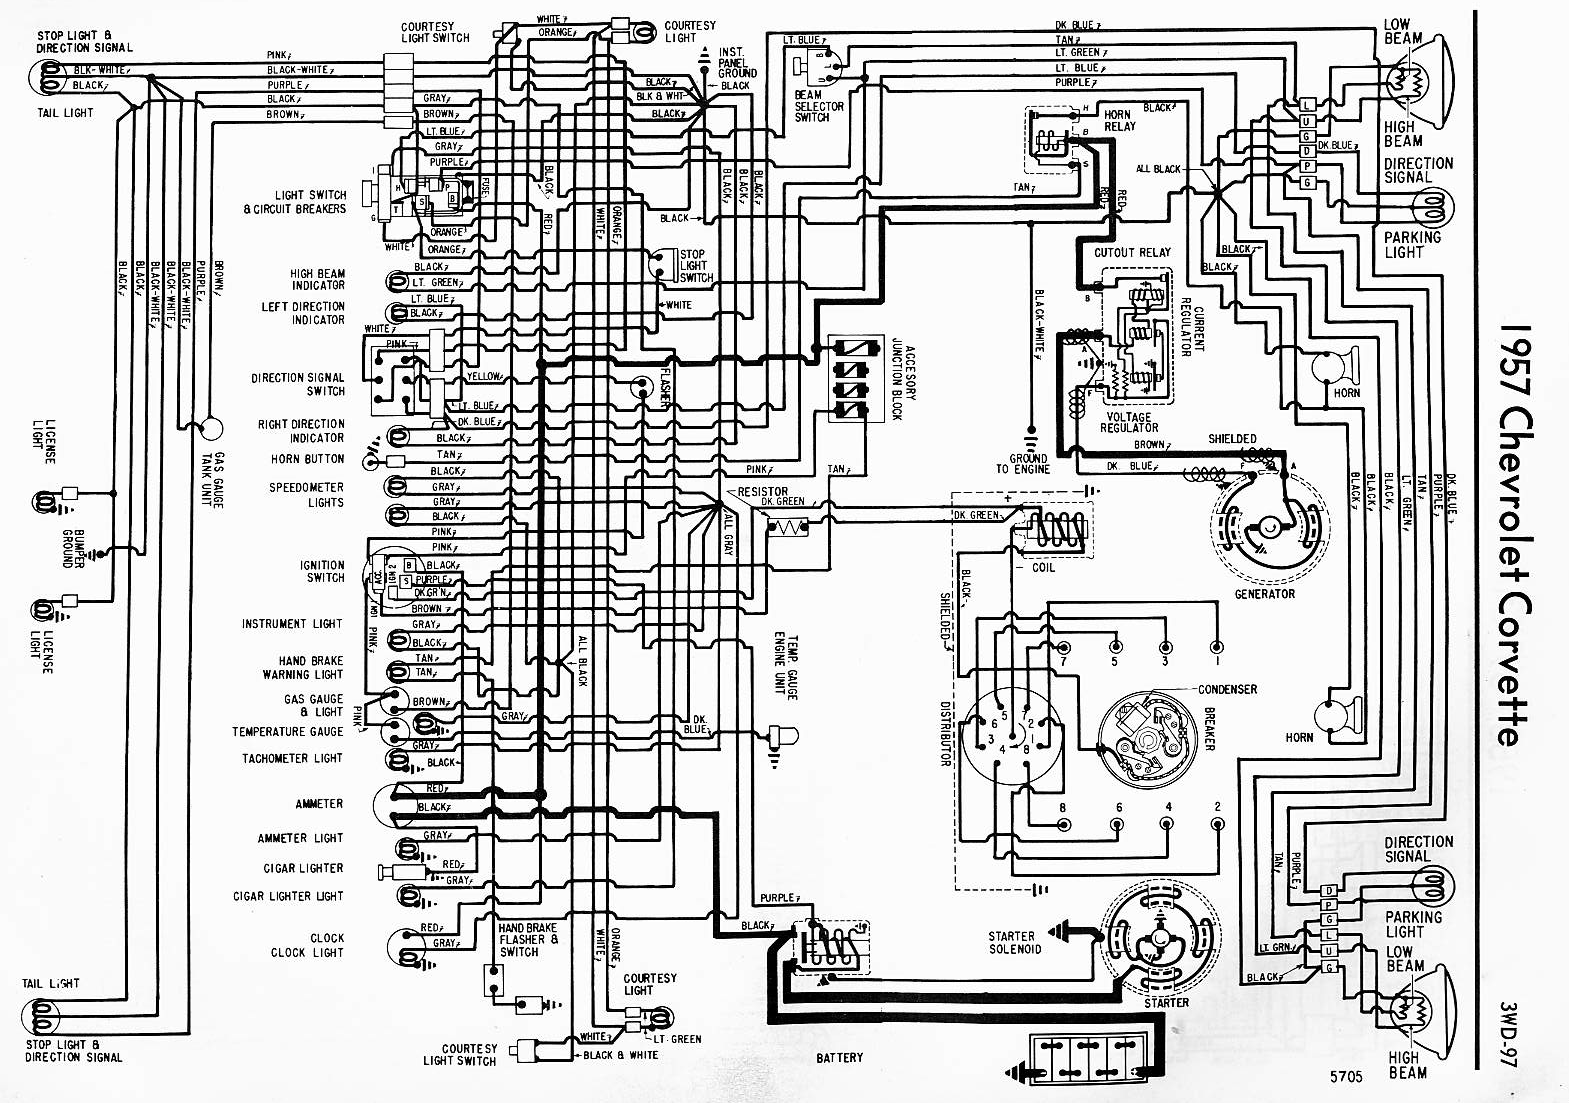 1957 Corvette Wiring Diagram Willcox Corvette Inc